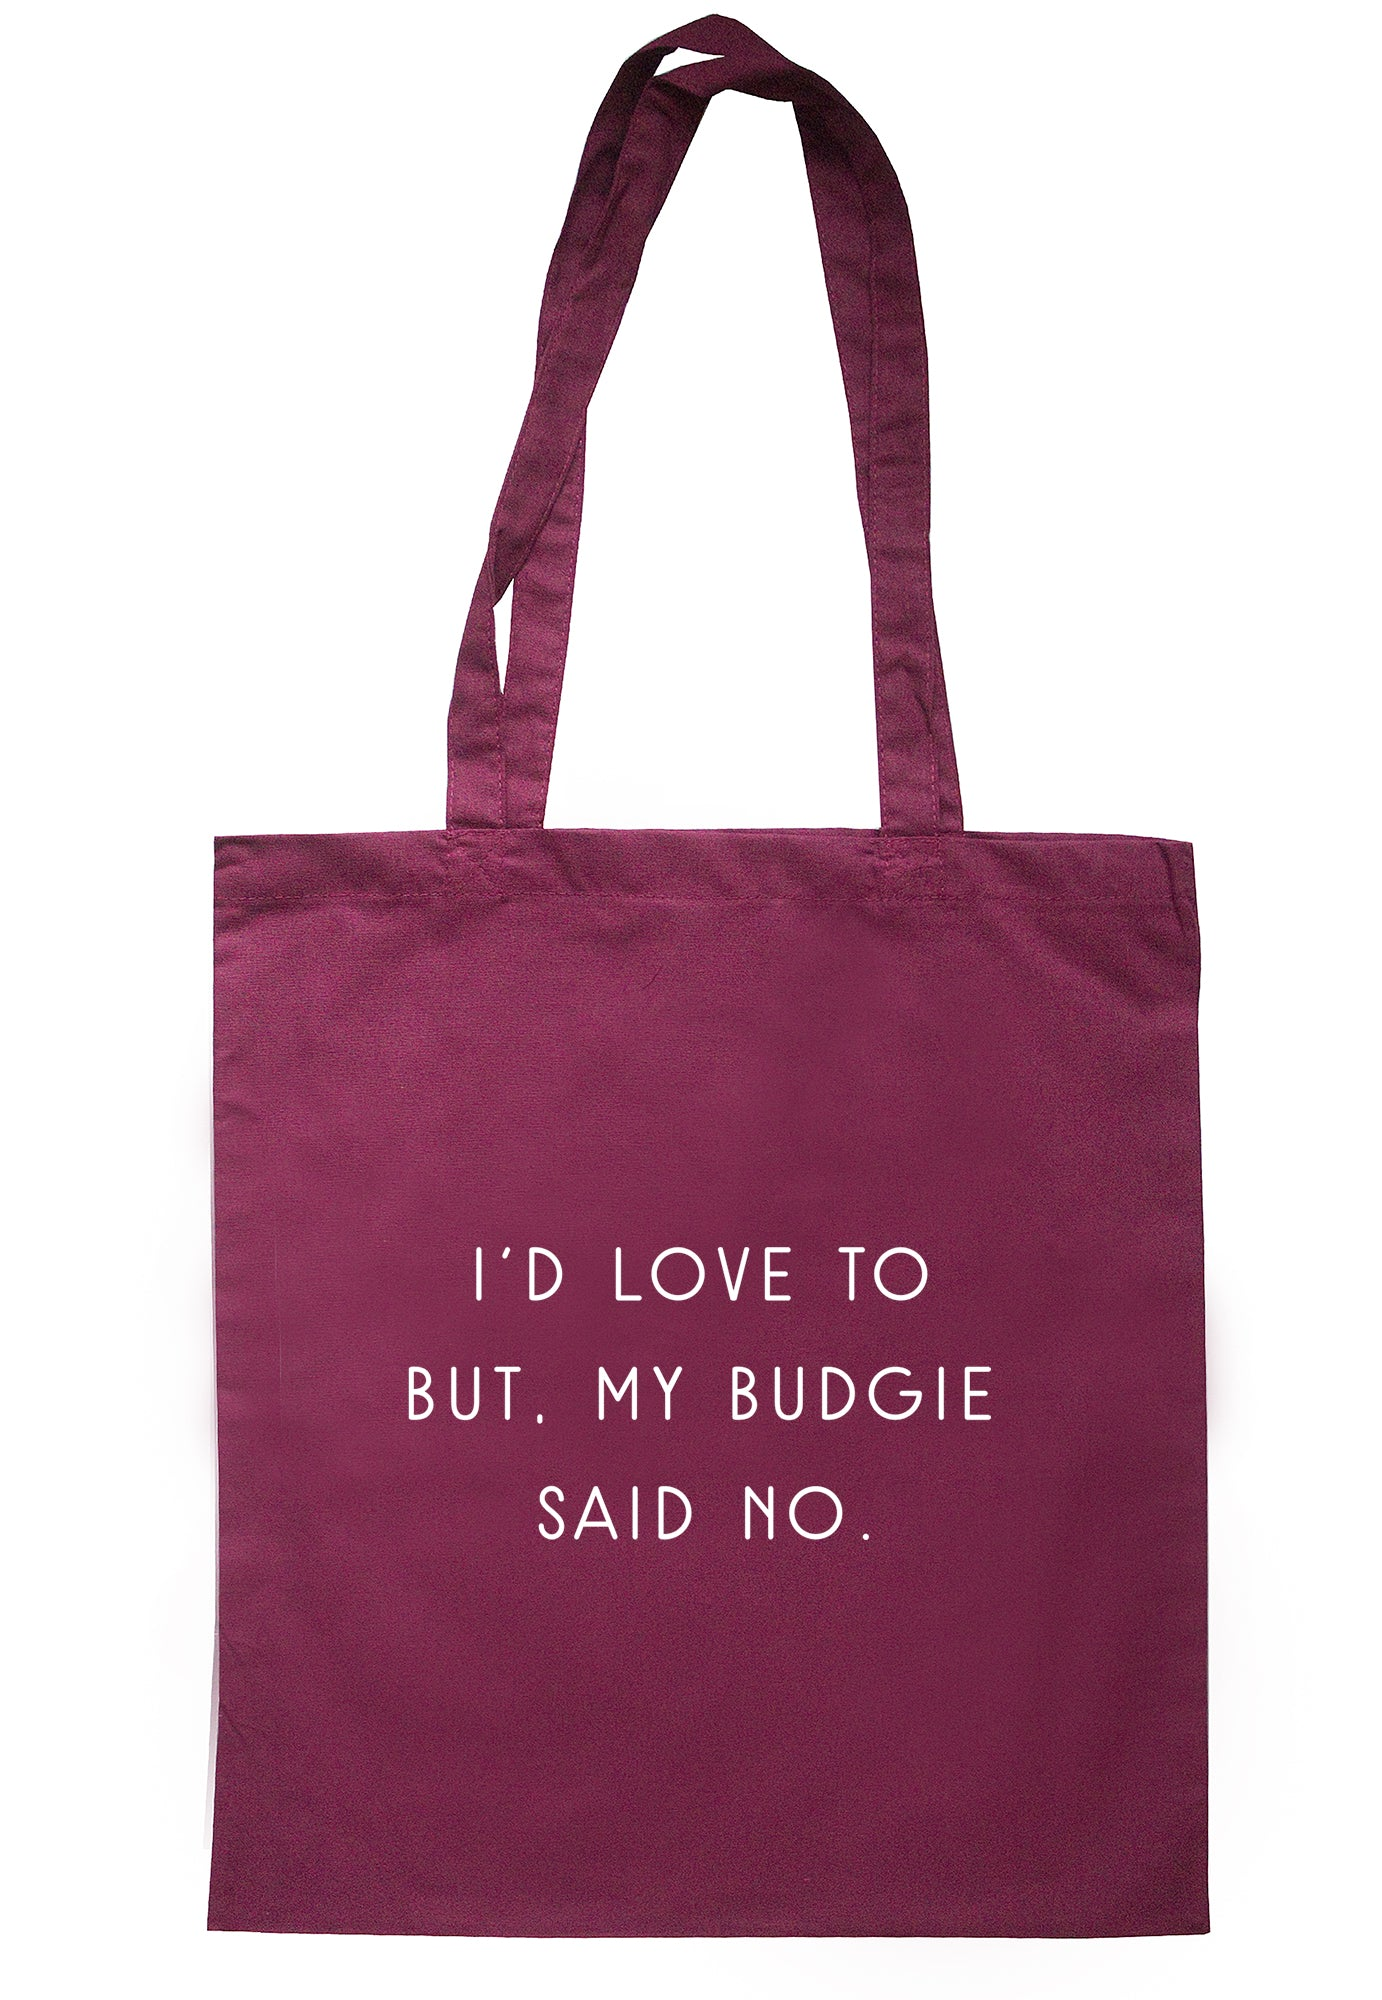 I'd Love To But, My Budgie Said No Tote Bag S1072 - Illustrated Identity Ltd.